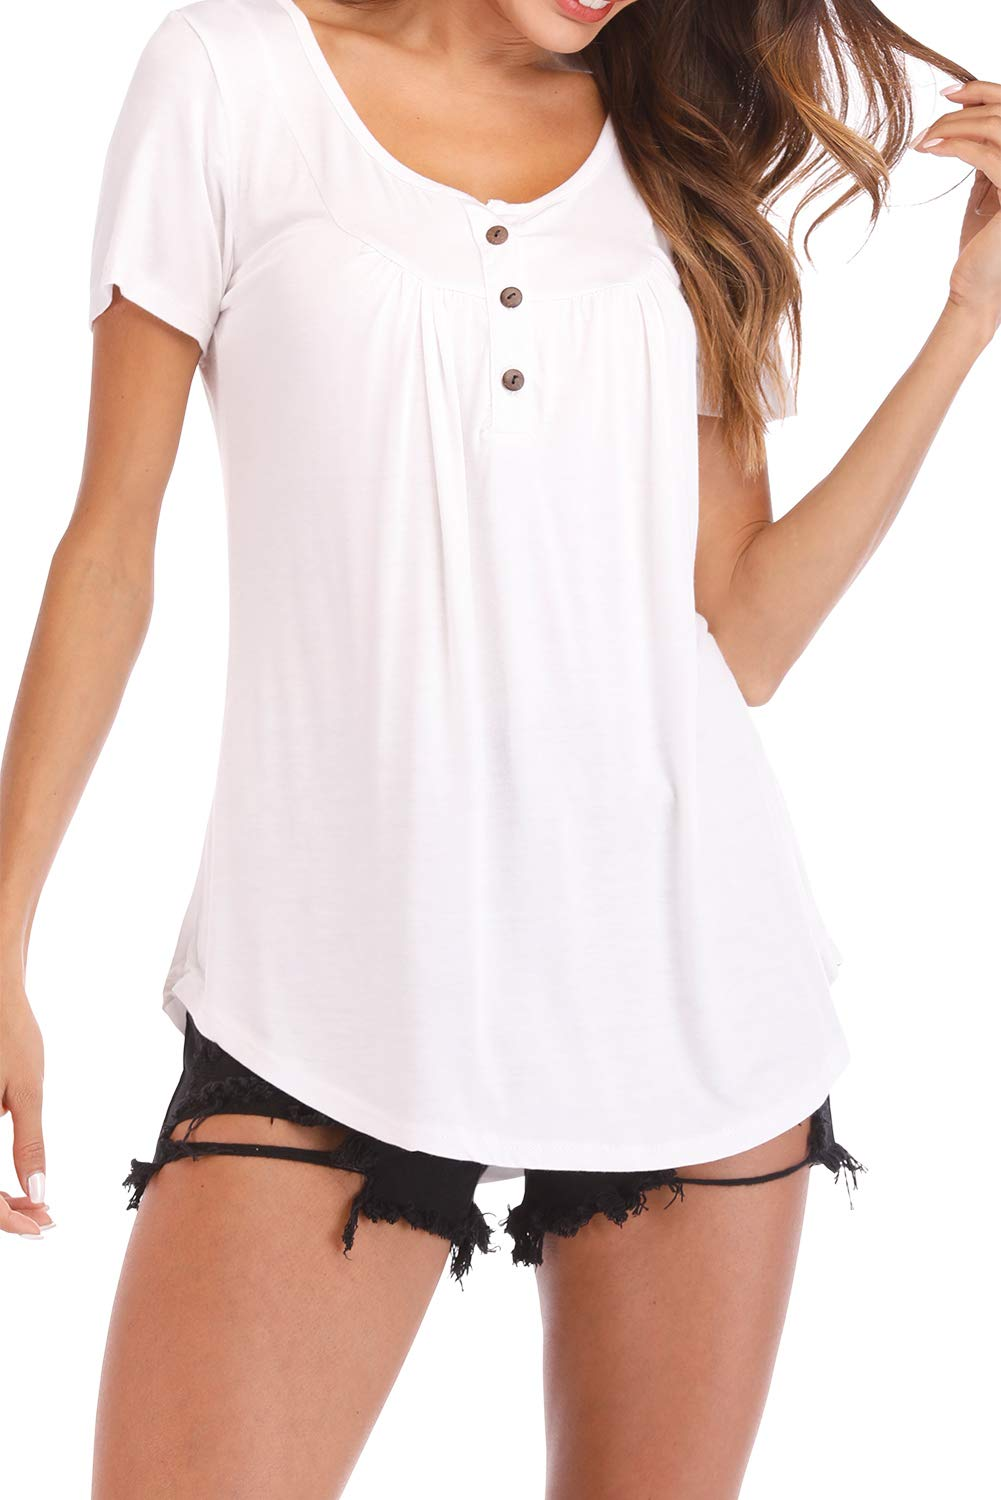 Fantastic Zone Womens Tops and Blouses Short Sleeve Tunics Plus Size Summer Shirts White XXL by Fantastic Zone (Image #2)